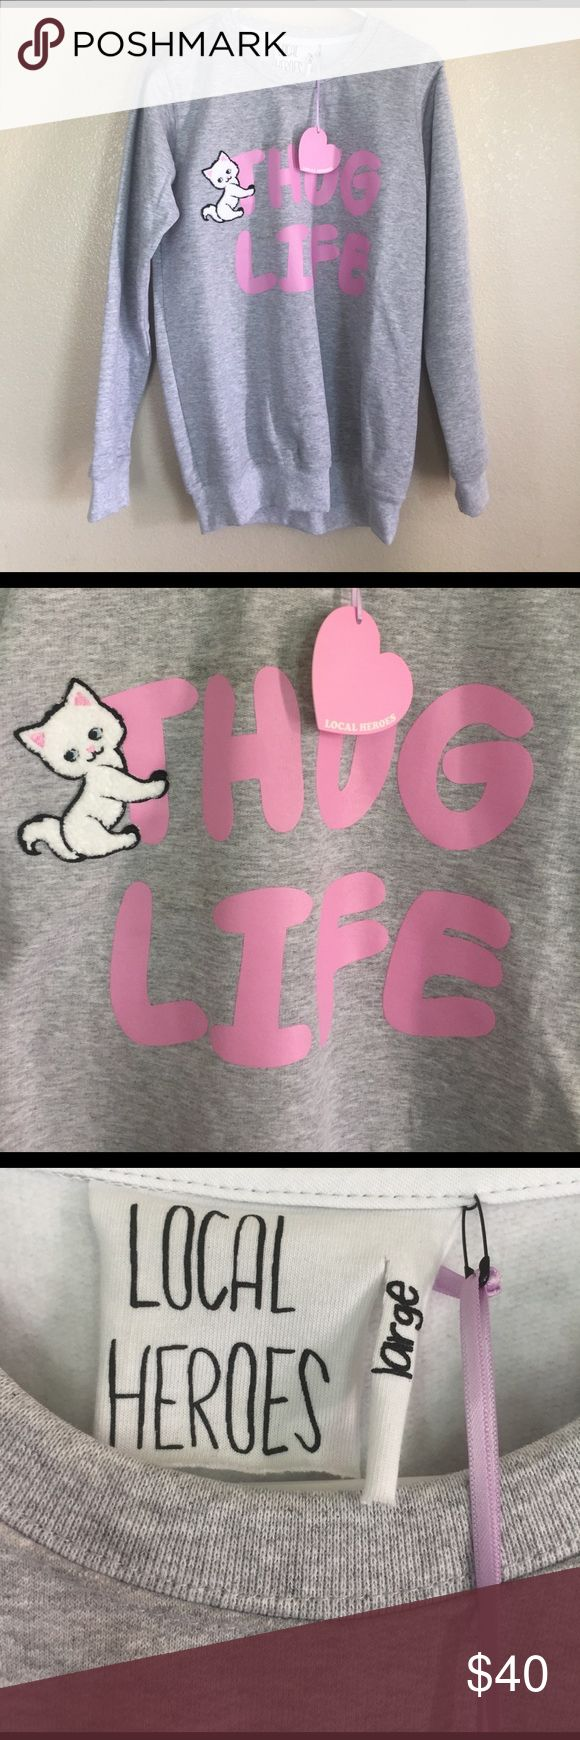 NWT Thug Life Cat Sweater In love with this Local Heroes cat sweater I bought from Dollskill but it runs like a medium :( Will fit a juniors size Large if you like your sweaters fitted and not oversized. This size is sold out online. Price is firm! EUC- not UNIF UNIF Sweaters